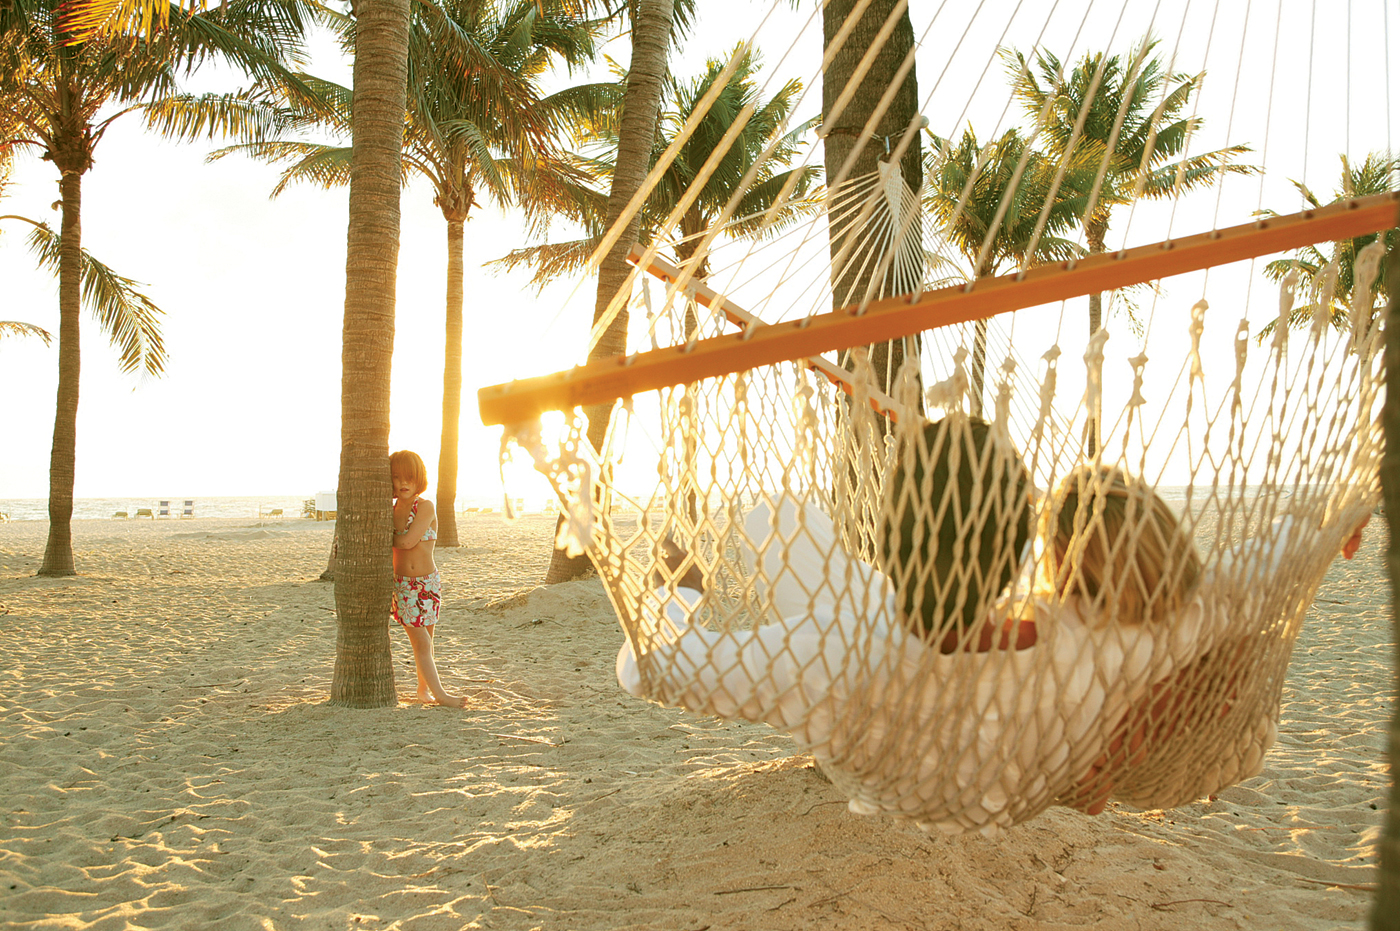 Parents in hammock with child nearby